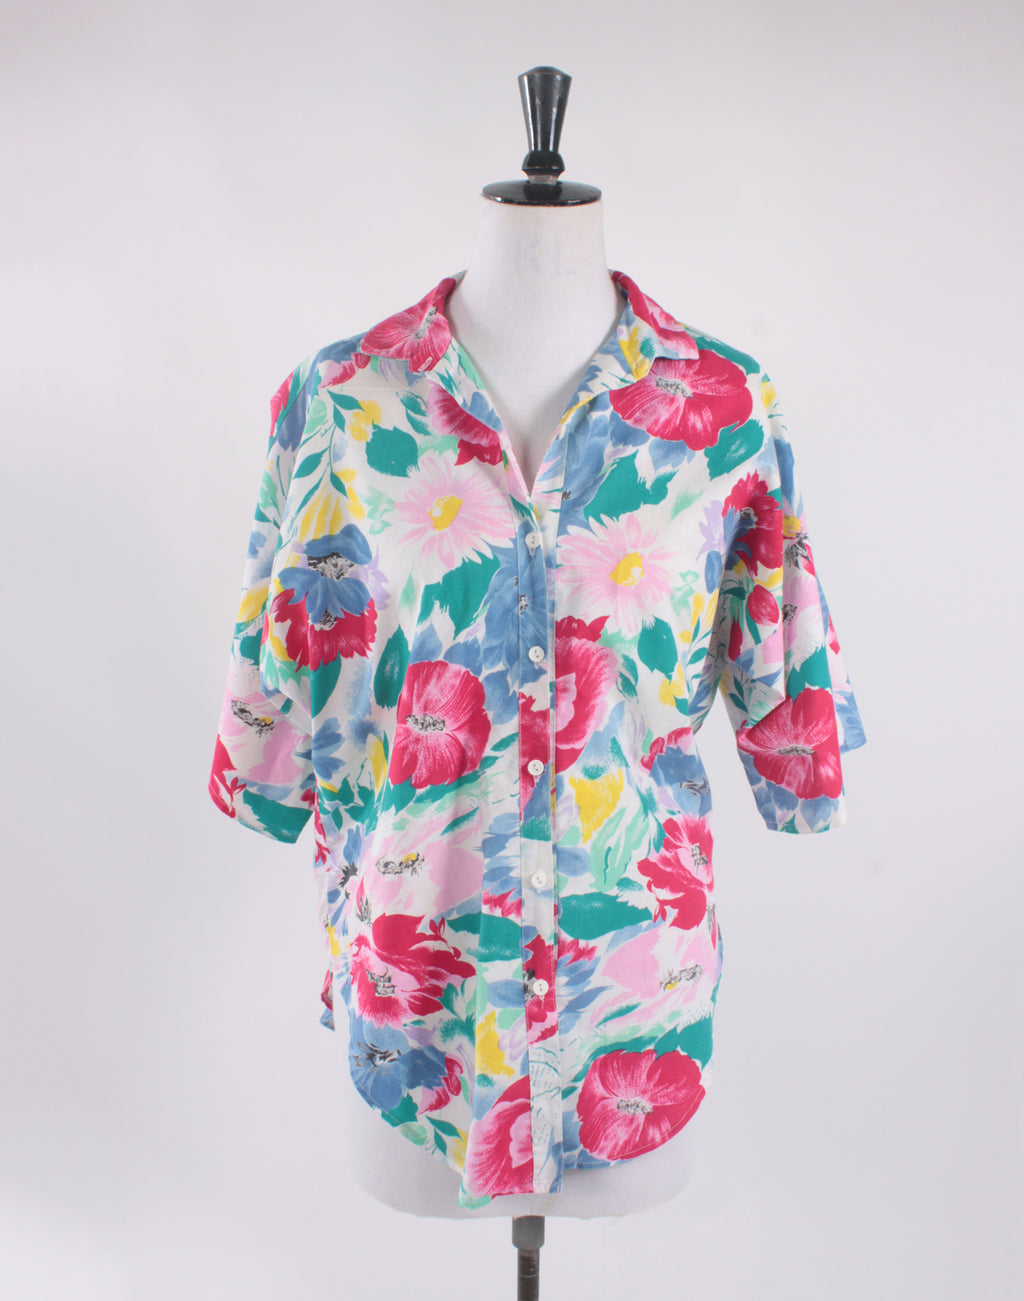 Bright Floral Vintage 80's Collars & Cuffs Shirt